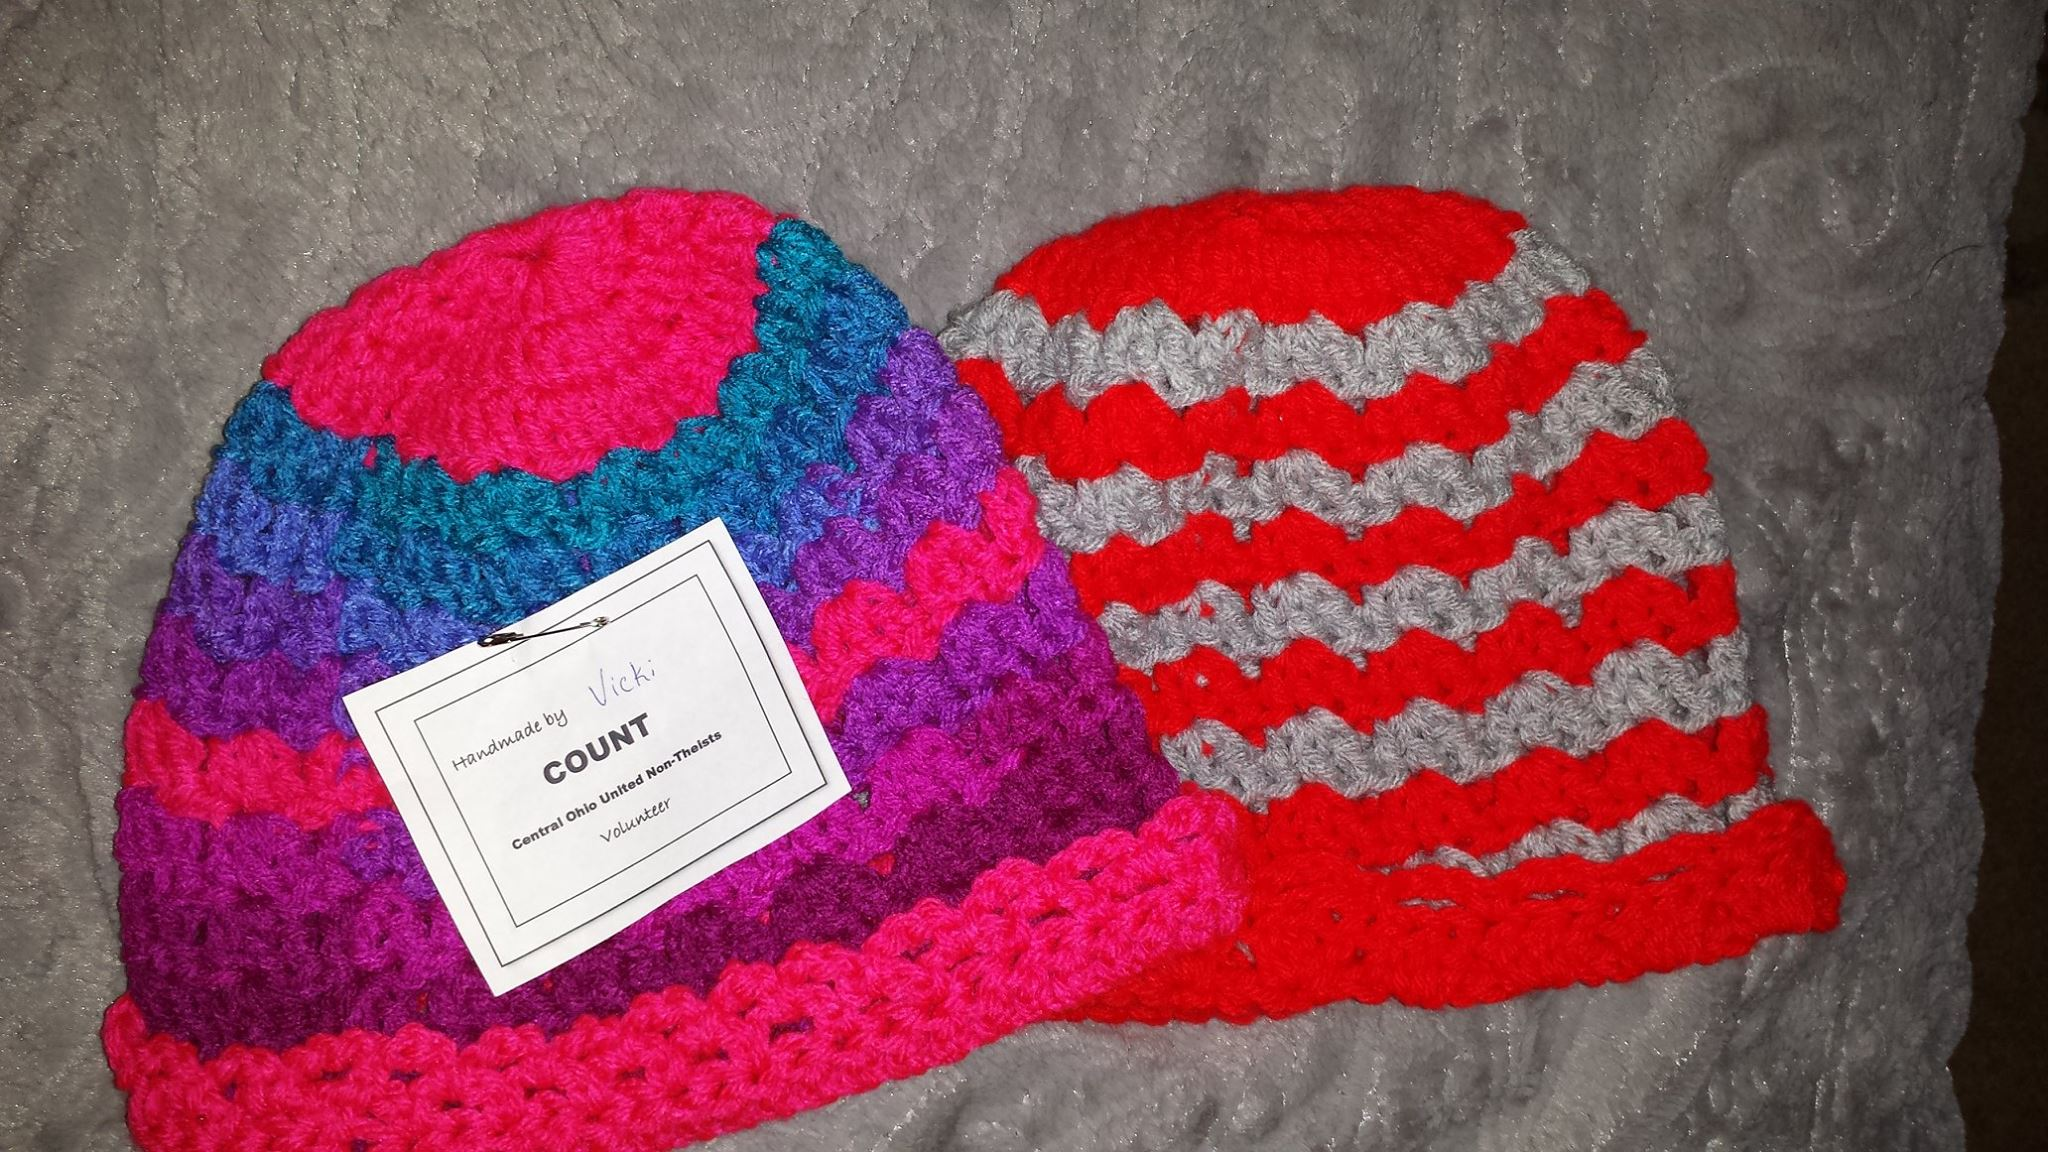 Two knitted hats with COUNT label